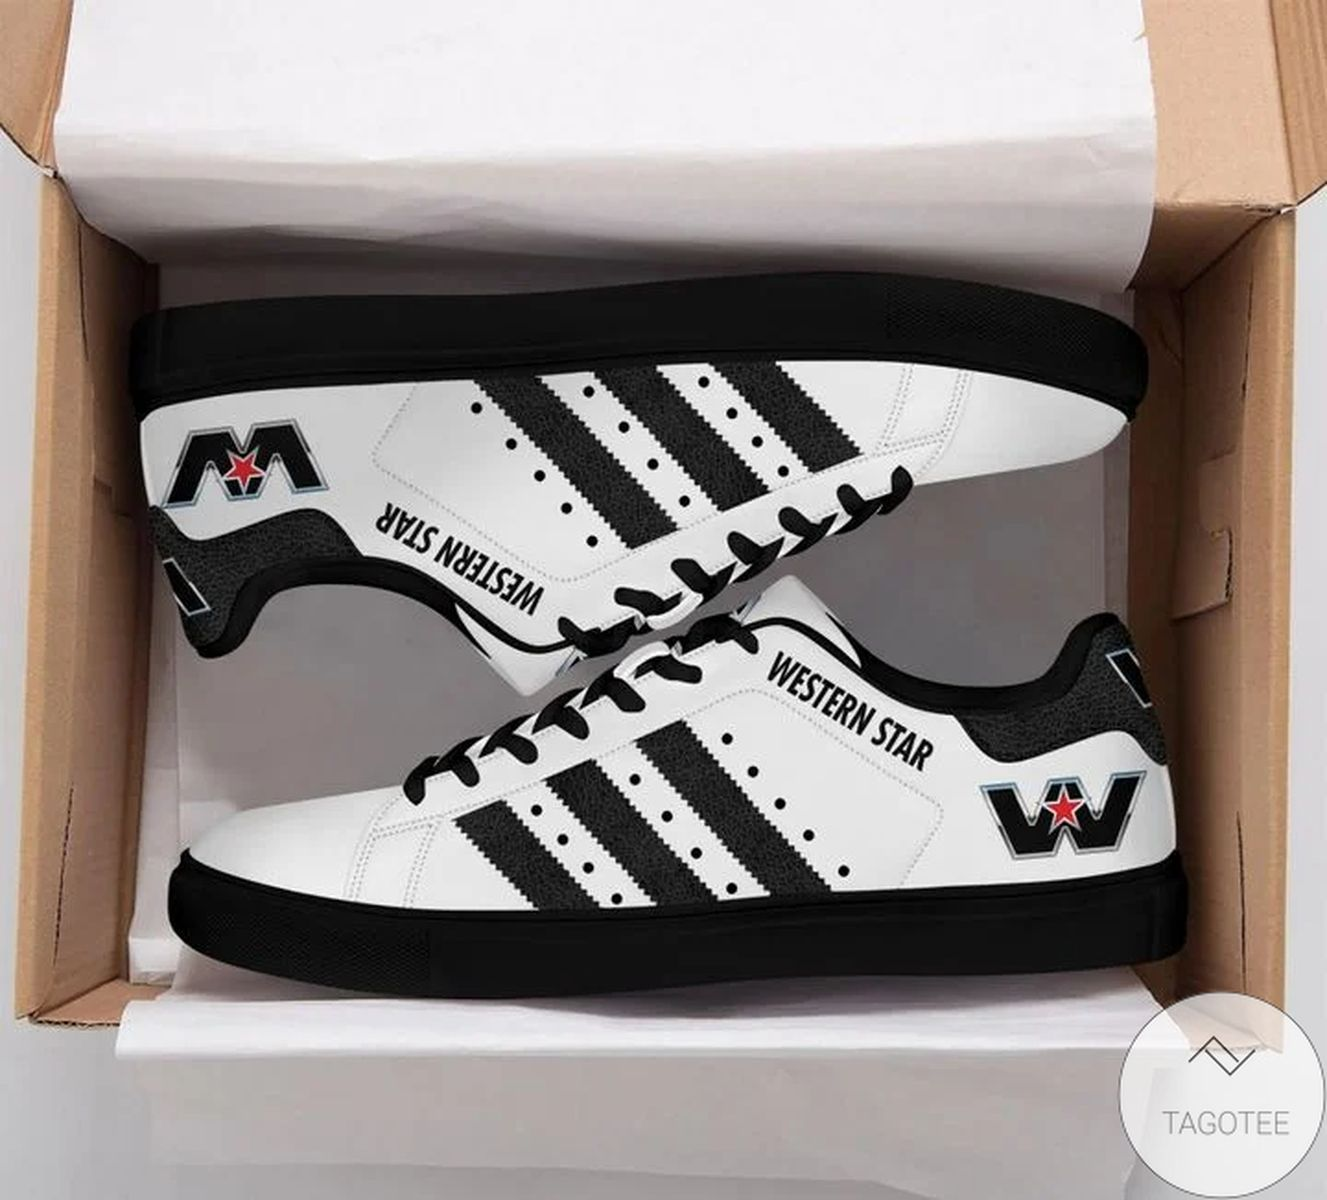 Western Star Stan Smith Shoes